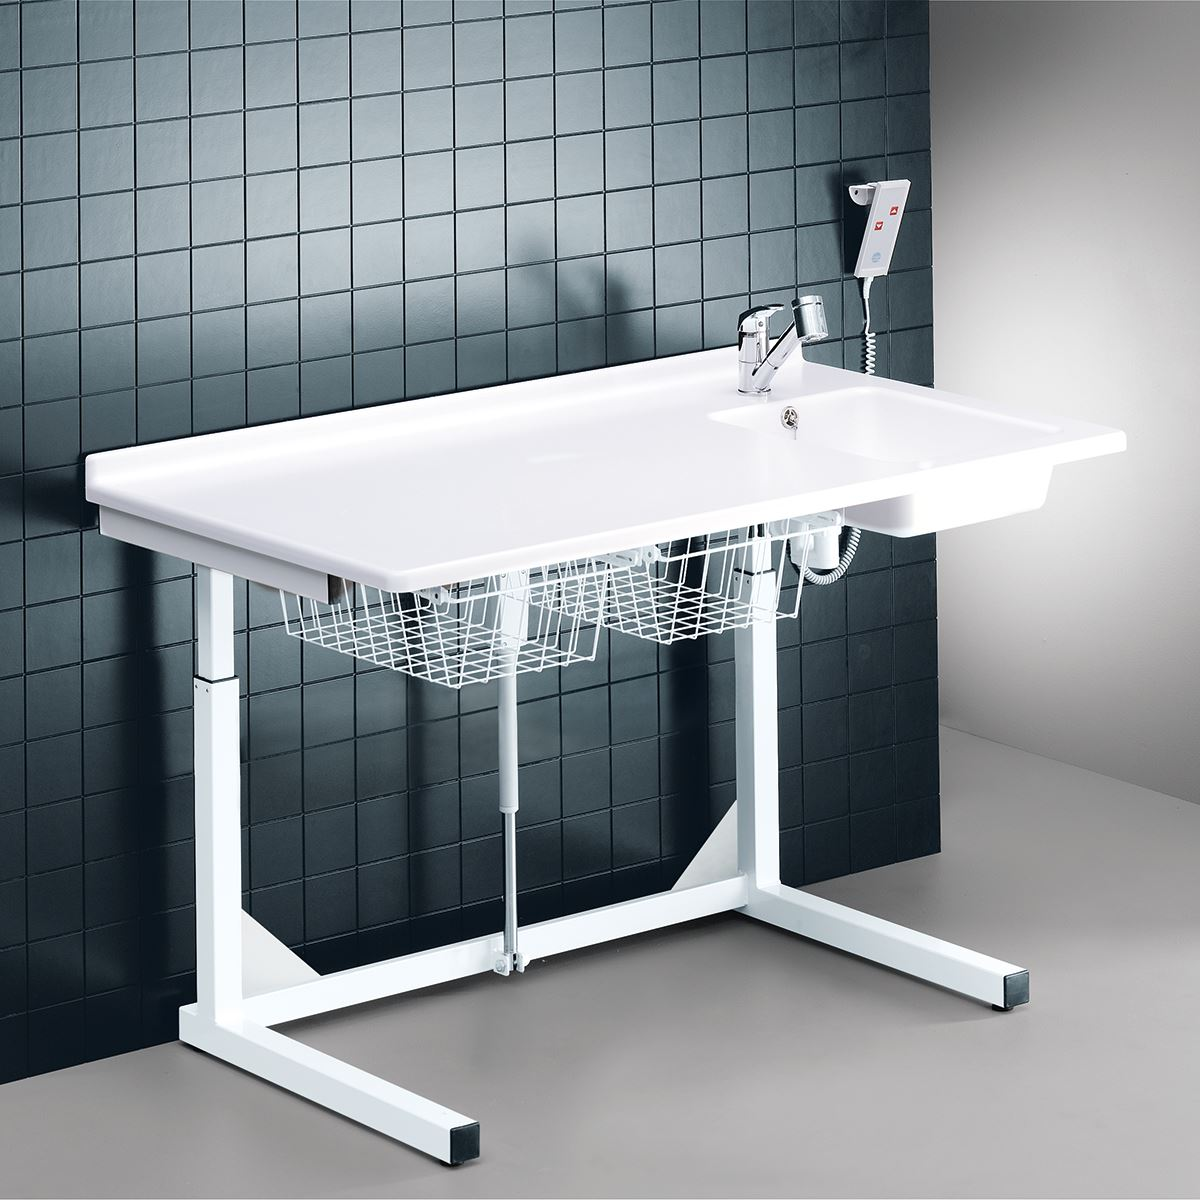 Changing table, 800 x 1400 mm, electrically height adjustable, with sanitary appliances and standard mixer tap